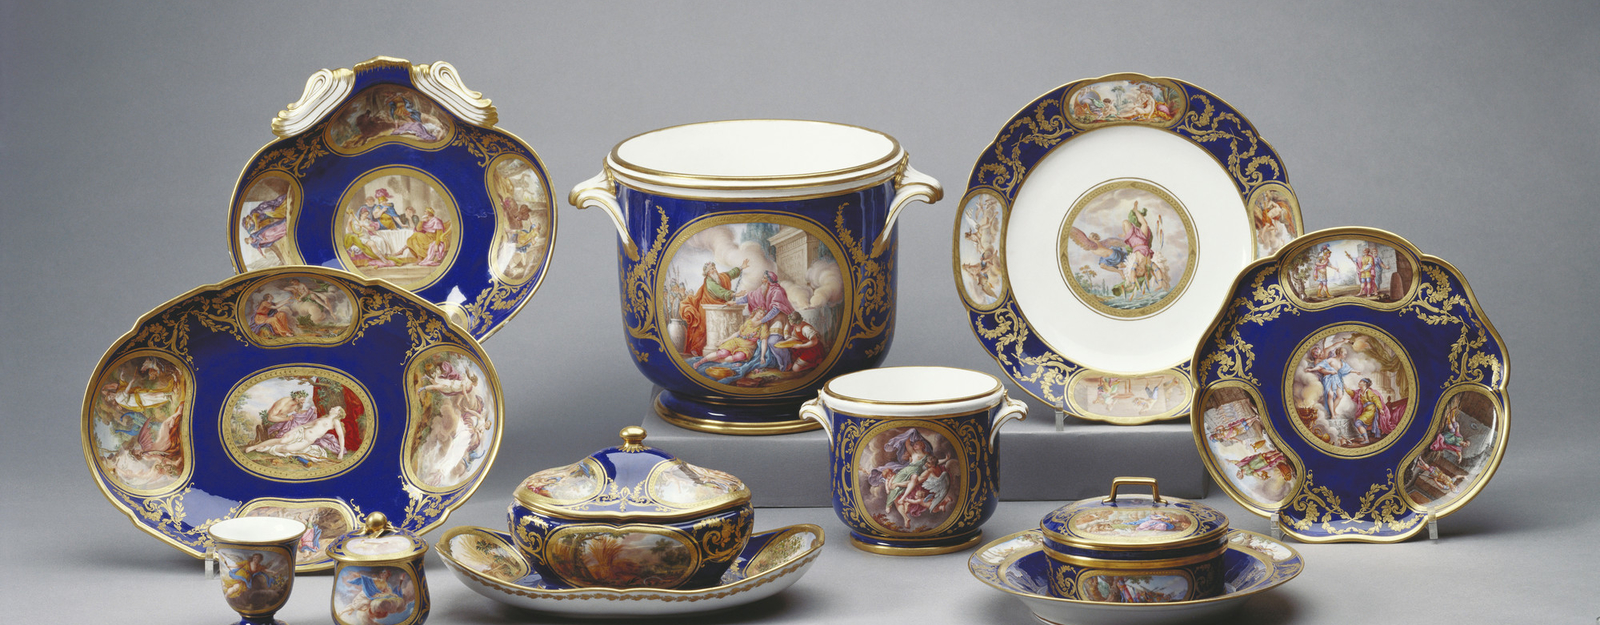 This service, of which the items in the Royal Collection form part, was the most costly and sumptuous ever created at Sèvres in the eighteenth century. It was intended to take 23 years to complete and was the swansong of the gre